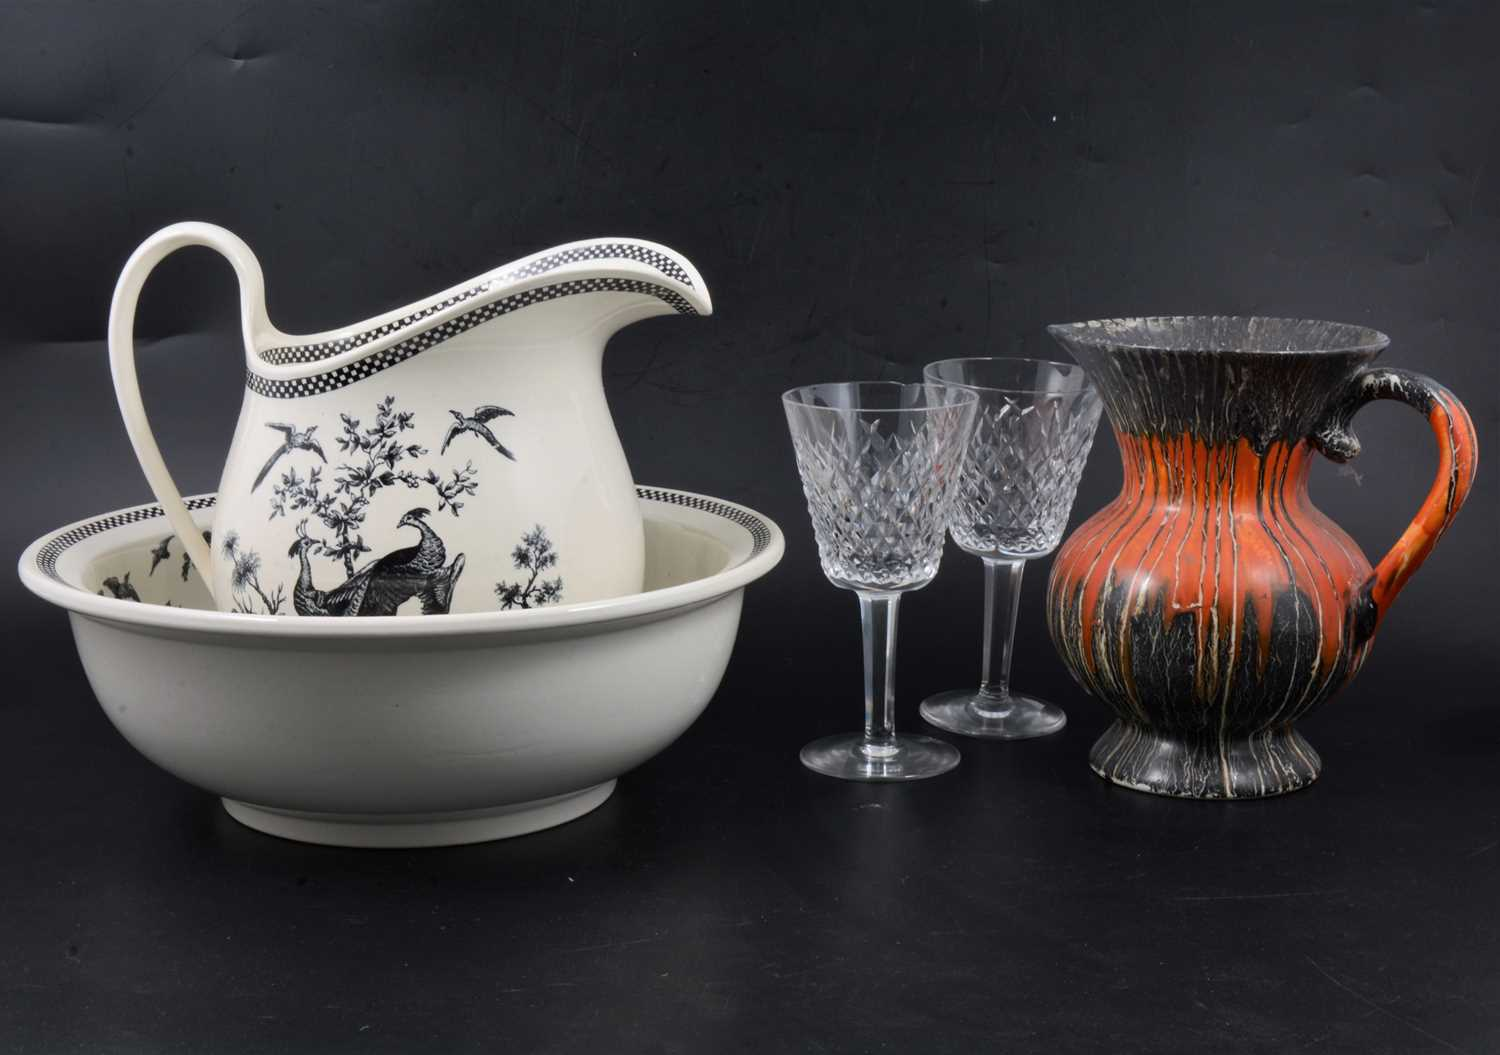 Lot 19 - A Wedgwood earthenware jug and bowl, plus other ceramics and glass.